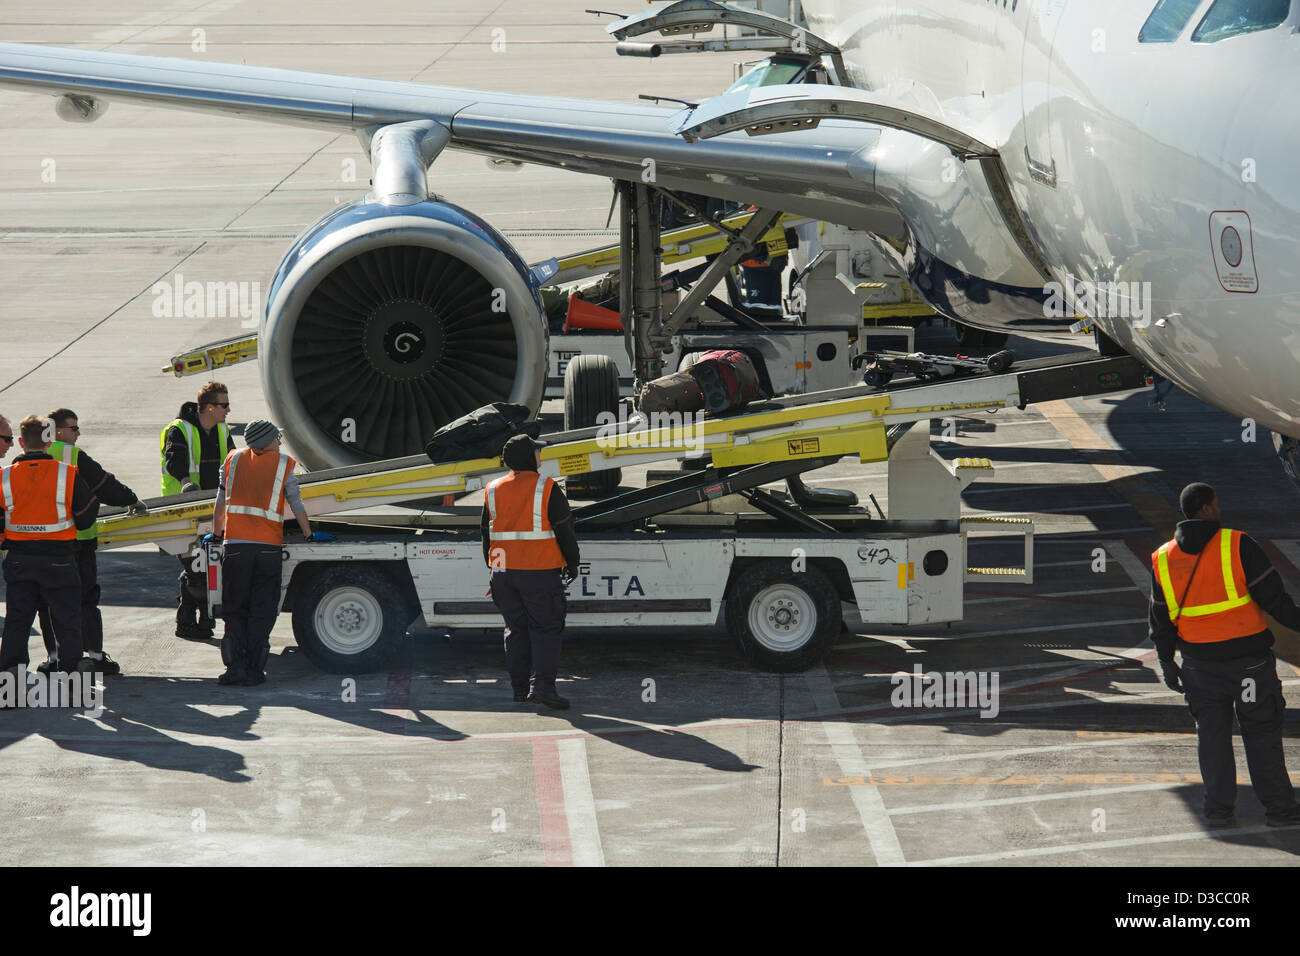 Denver, Colorado   The Ground Crew Unloads Luggage From A Delta Airlines  Plane At Denver International Airport.